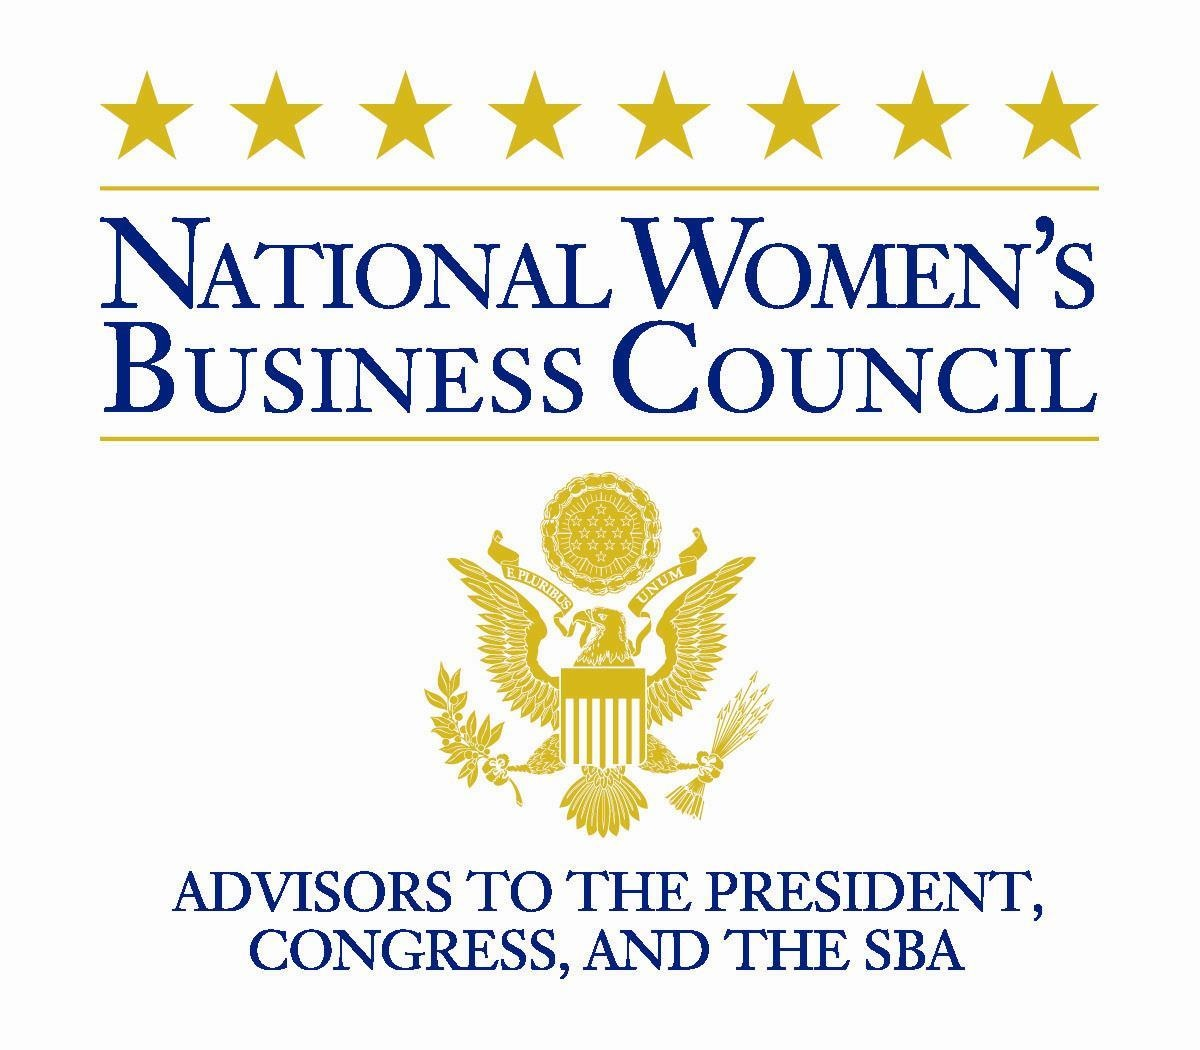 National Women's Business Council